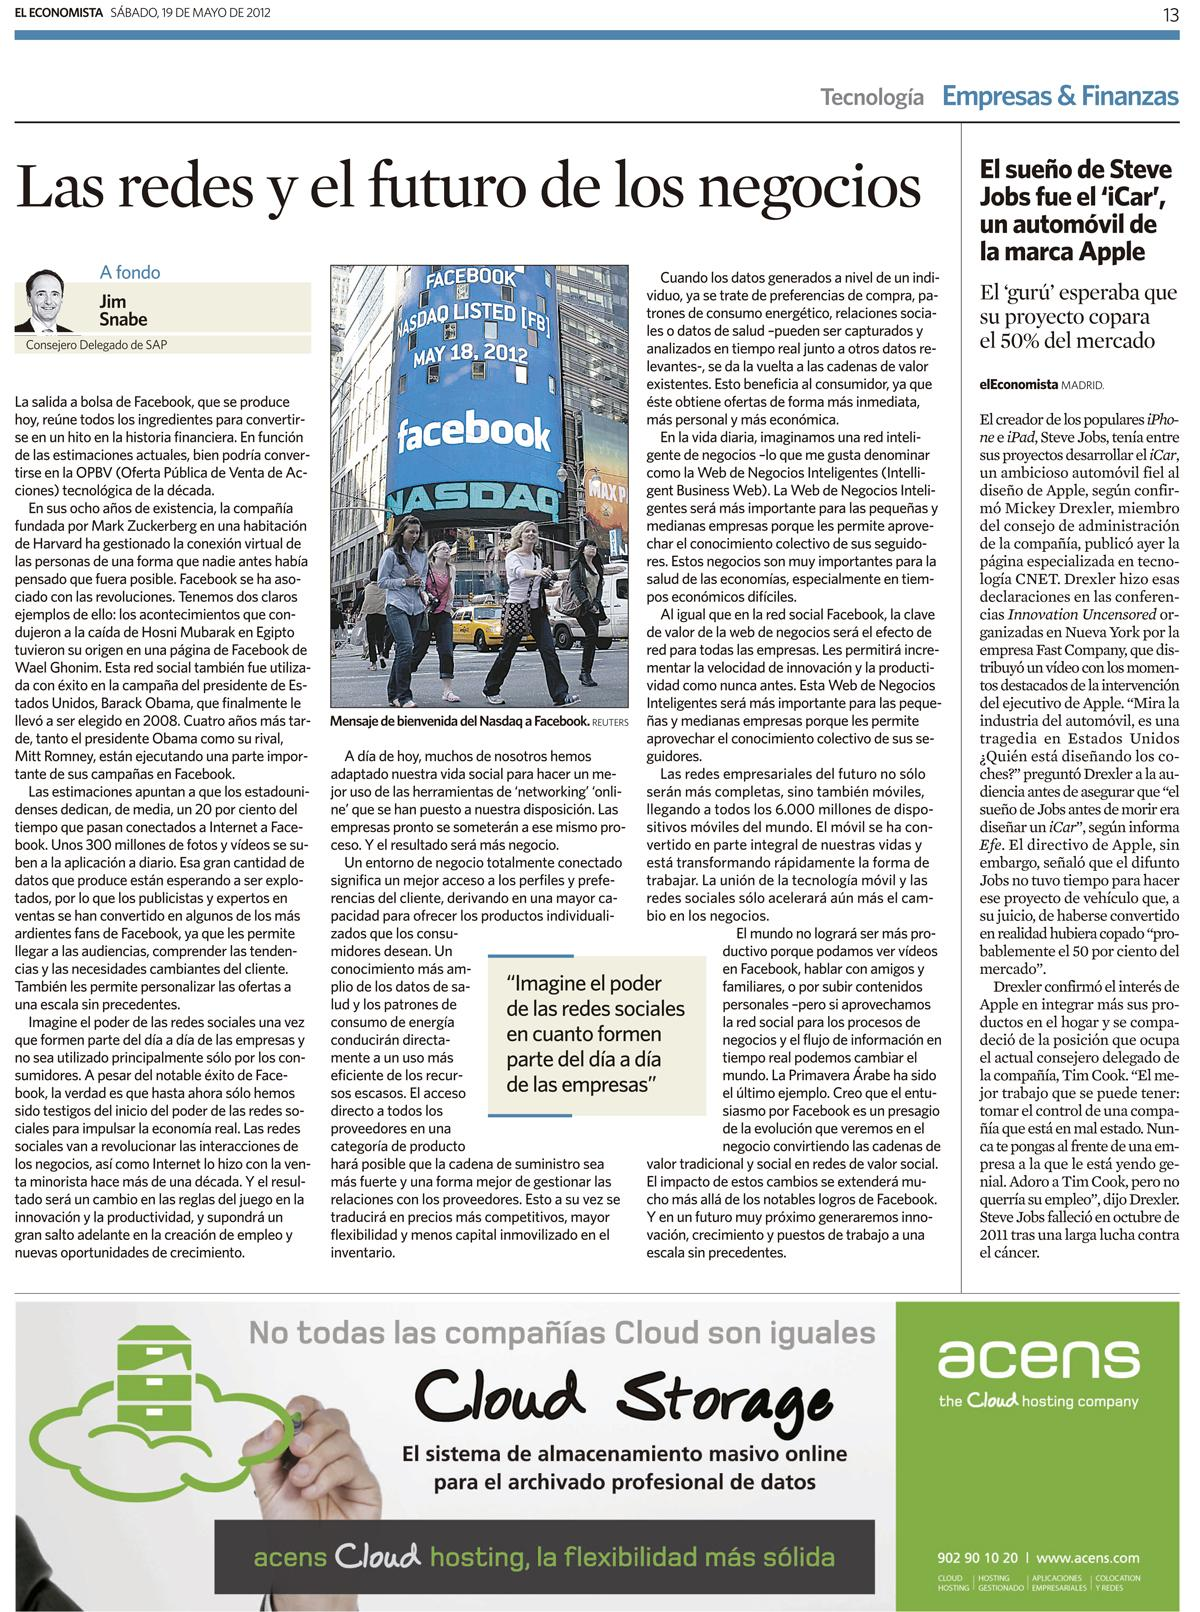 El Economista 19 de mayo 2012 - blog acens the cloud hosting company